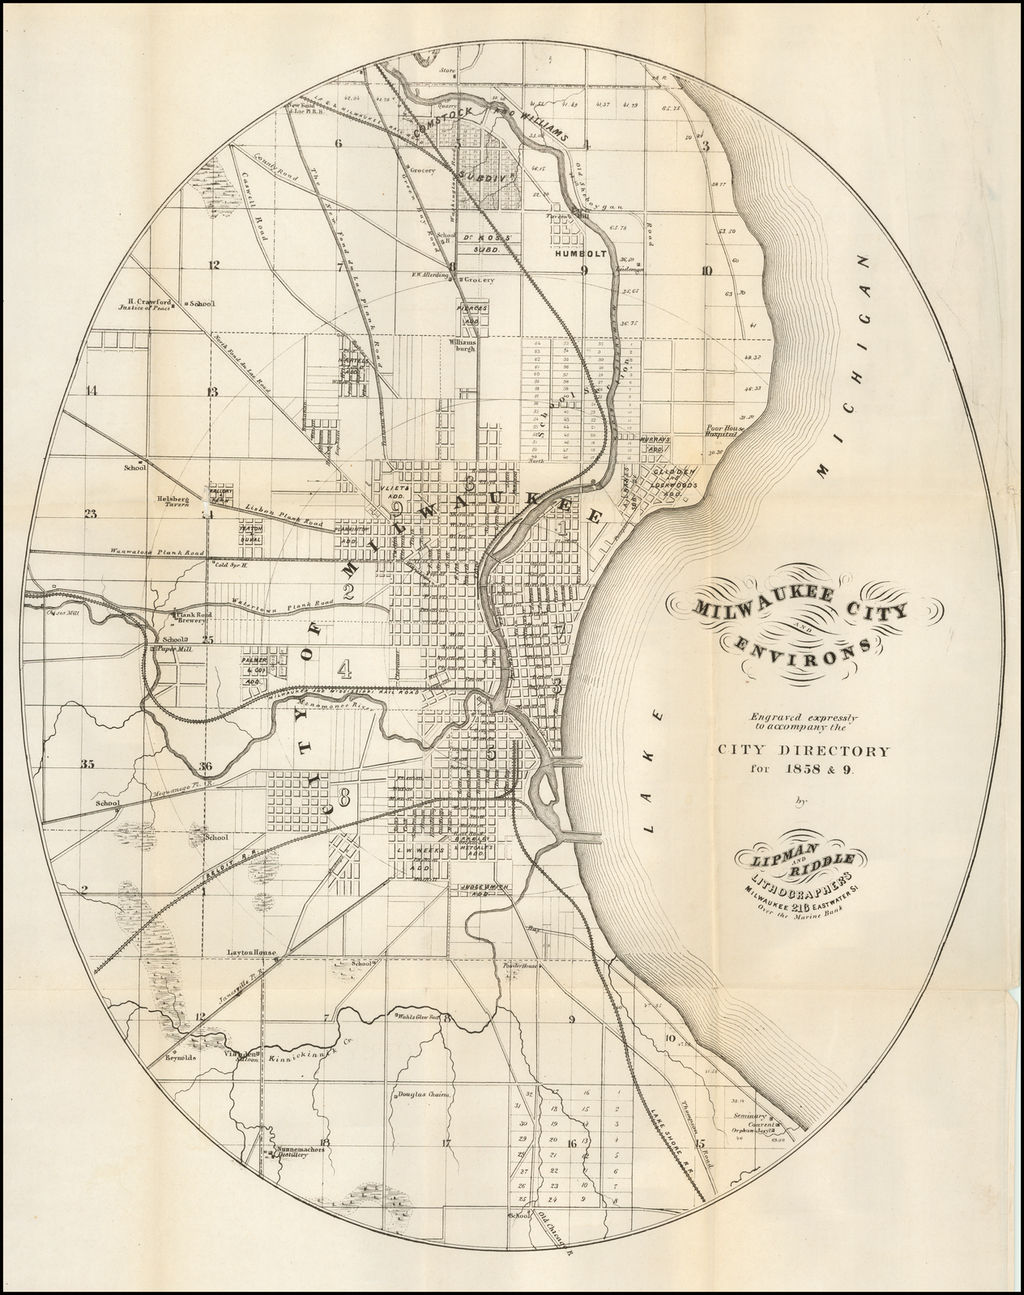 Milwaukee City and Environs Engraved expressly to accompany the City Directory for 1858 & 9. [with:] Milwaukee City Directory. 1858-9. By Lipman & Riddle